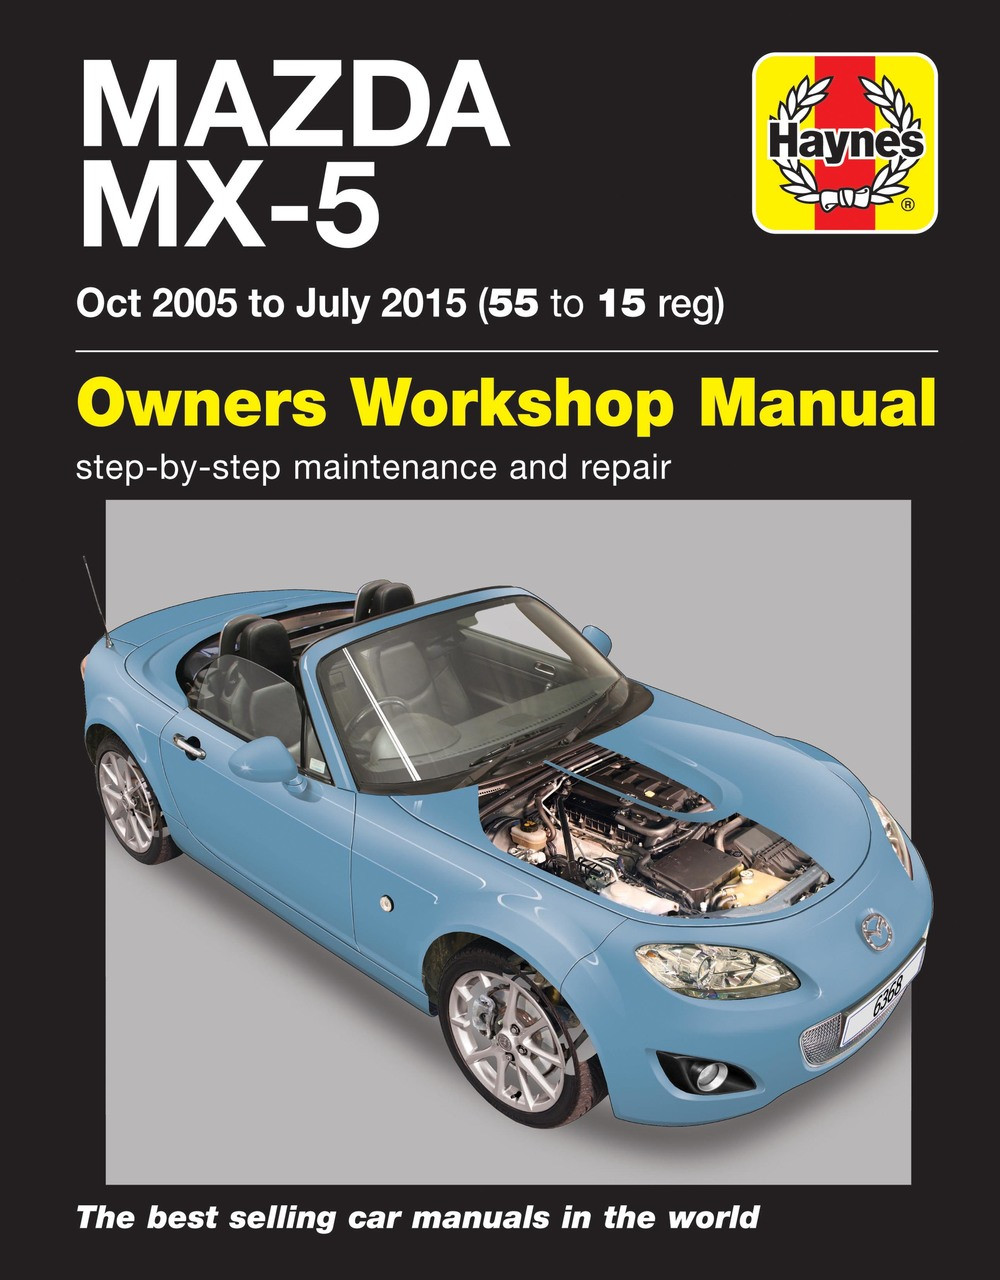 2000 miata repair manual user guide manual that easy to read u2022 rh gatewaypartners co 1999 Mazda Miata 1990 Mazda Miata Body Kits